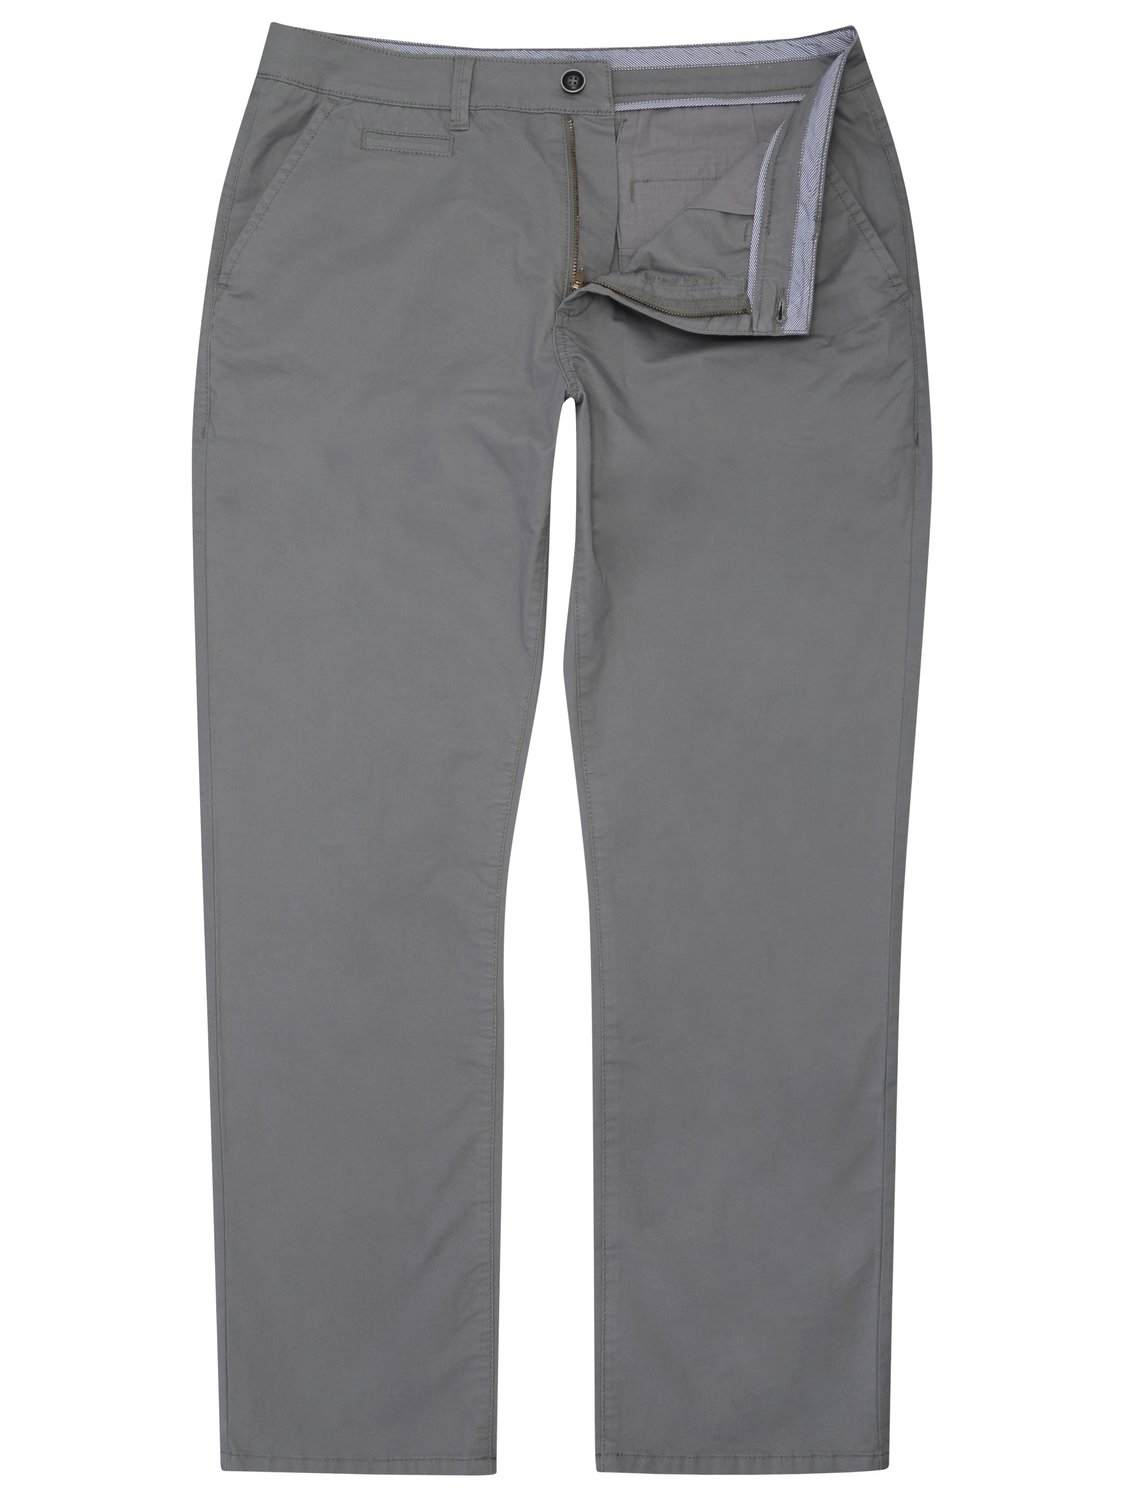 Image of Mens classic cotton straight leg flat front stretch casual chino trousers - Light Grey